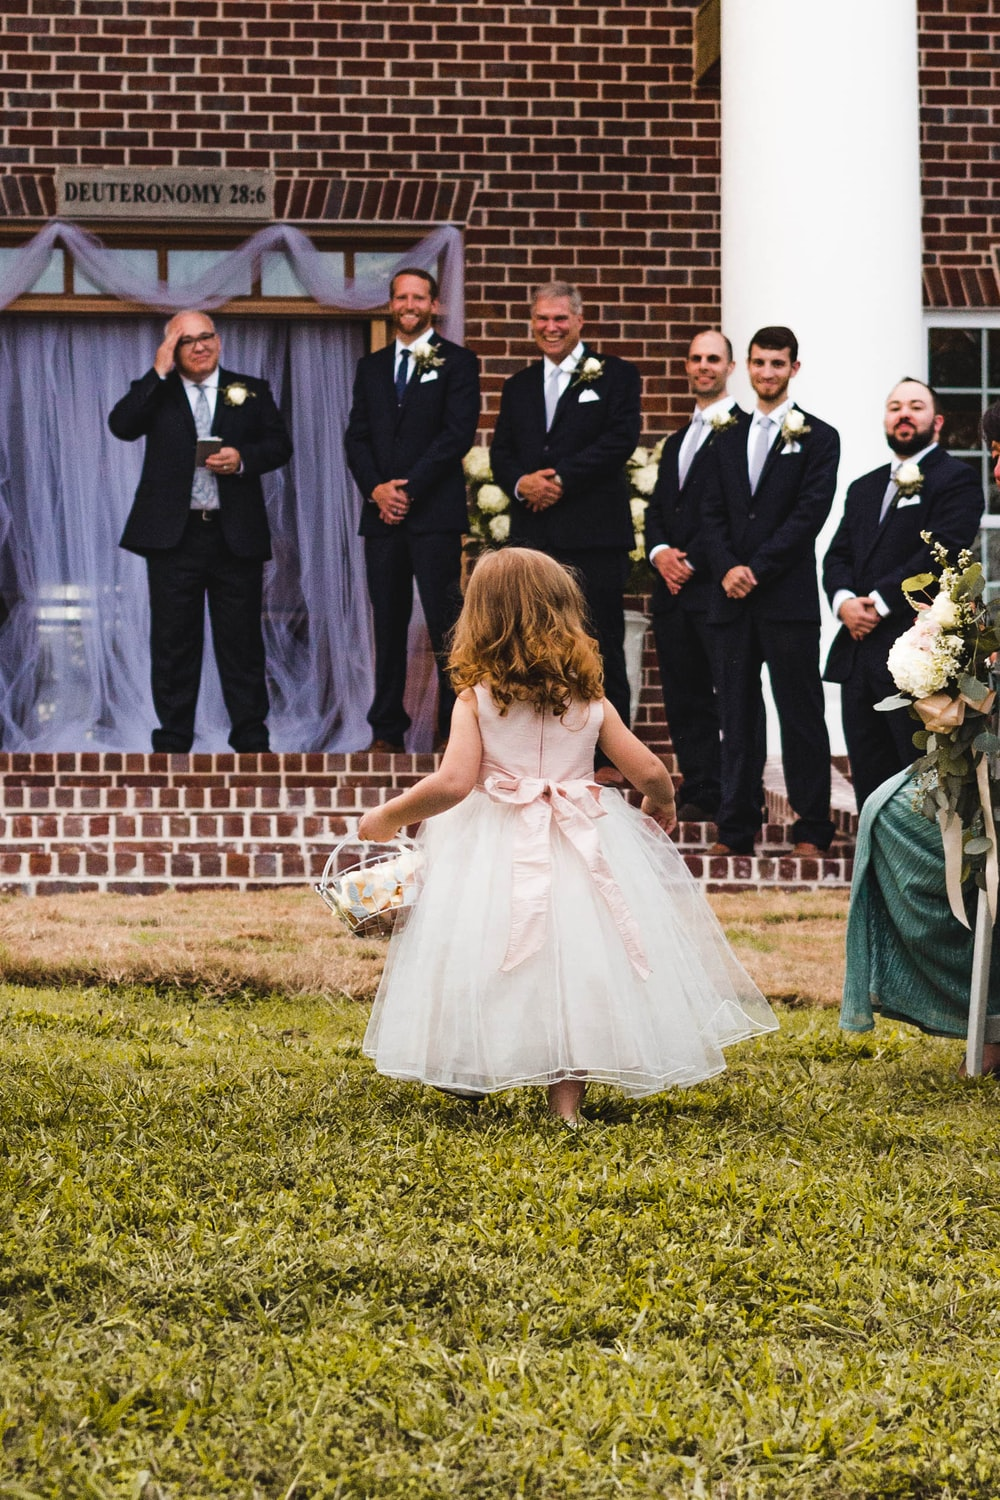 500 flower girl pictures hd download free images on unsplash wedding day mightylinksfo